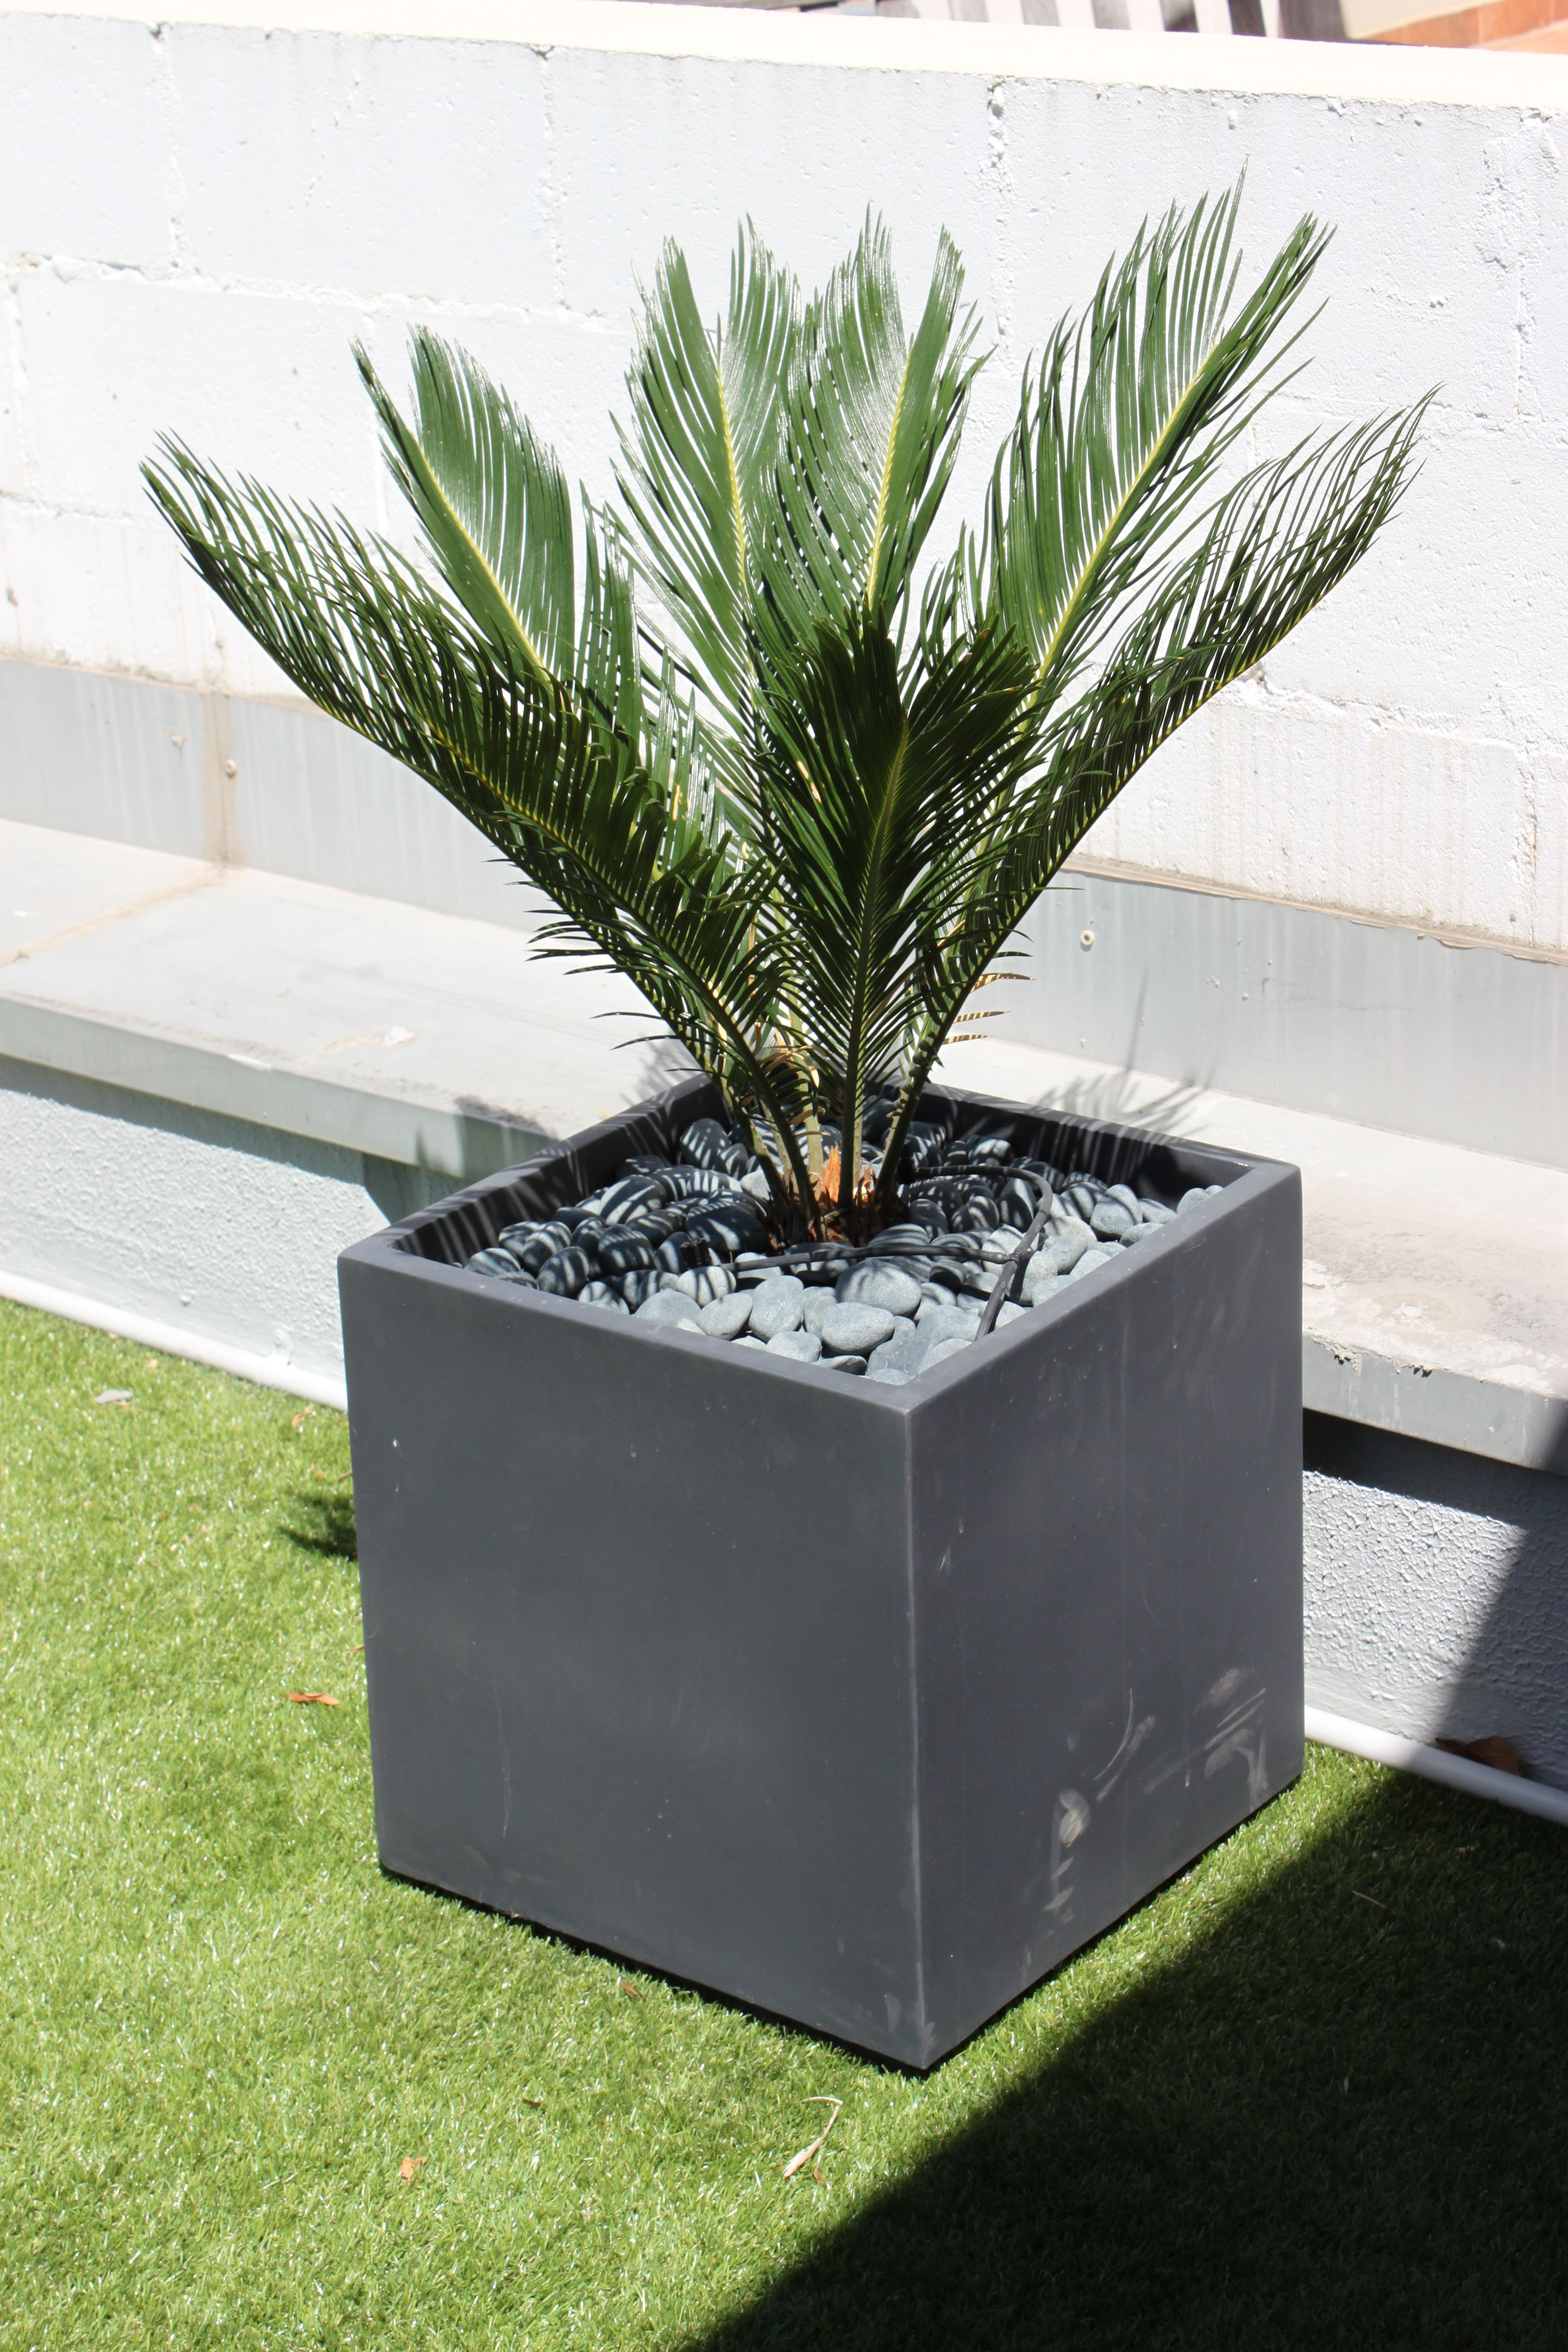 nadia gill landscape architect - charcoal cube planter with cycad